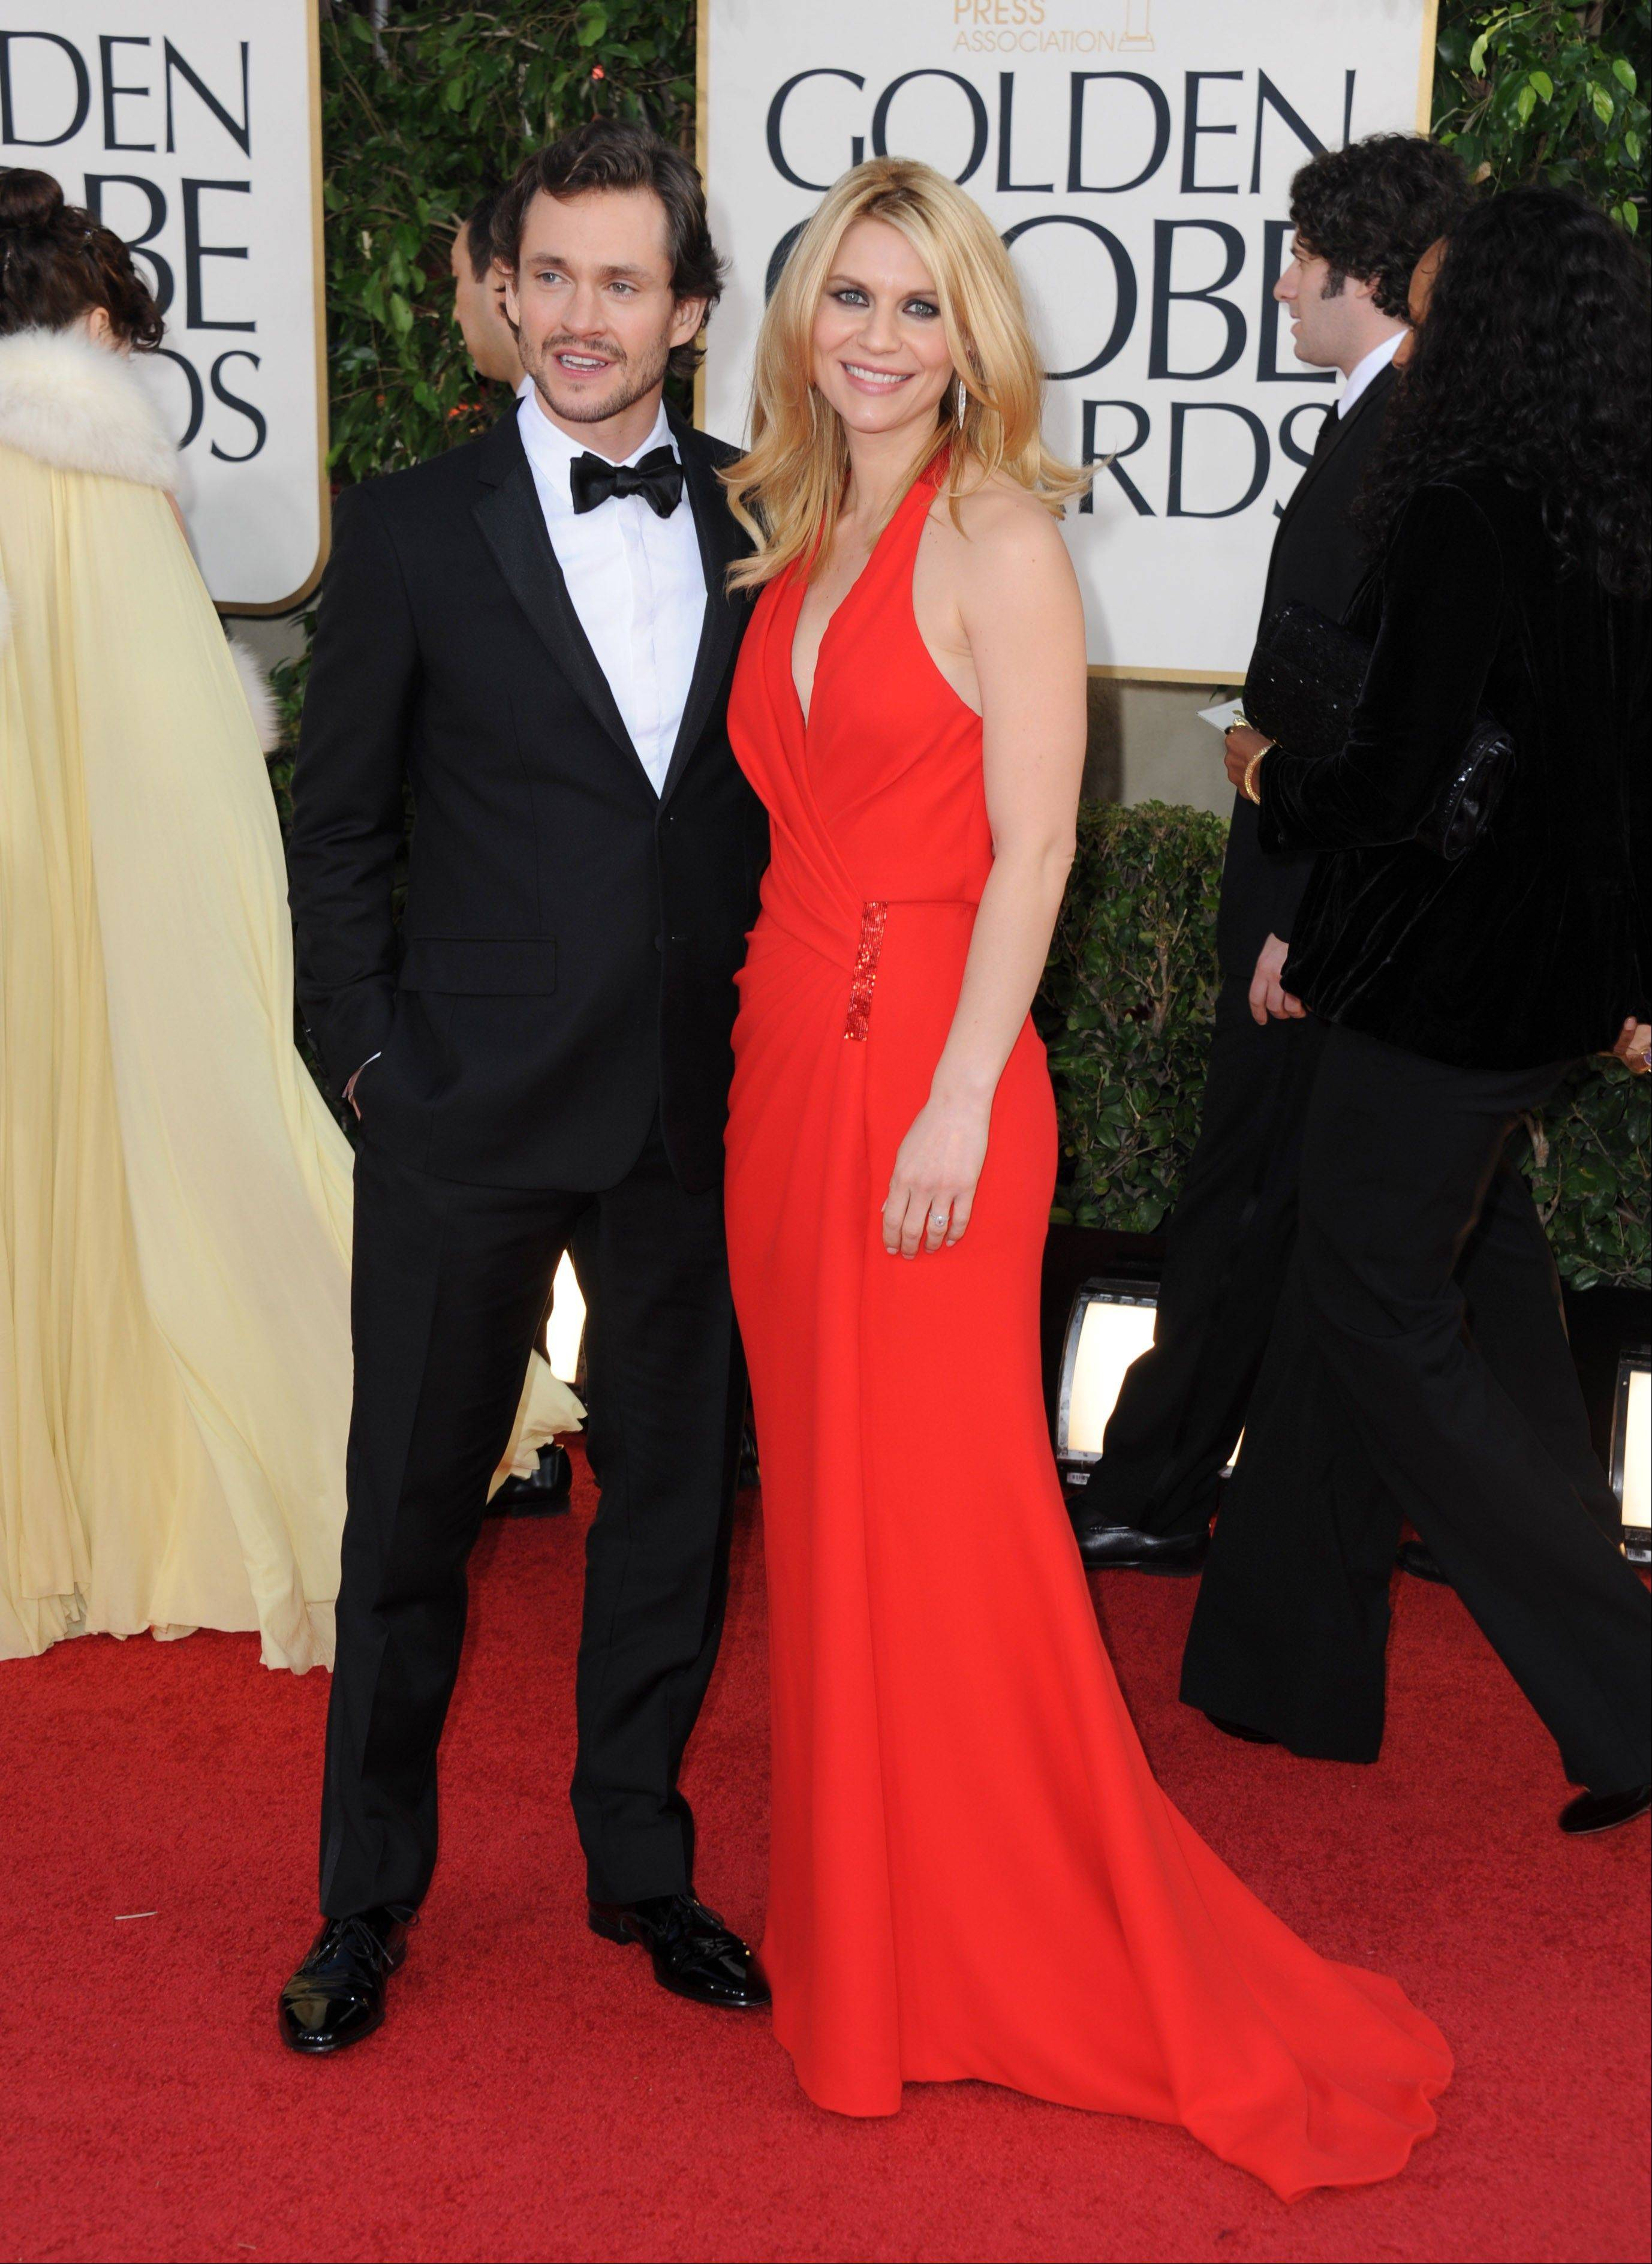 """Homeland"" actress Claire Danes and her husband, actor Hugh Dancy, arrive at the 70th Annual Golden Globe Awards at the Beverly Hilton Hotel on Sunday Jan. 13, 2013, in Beverly Hills, Calif."